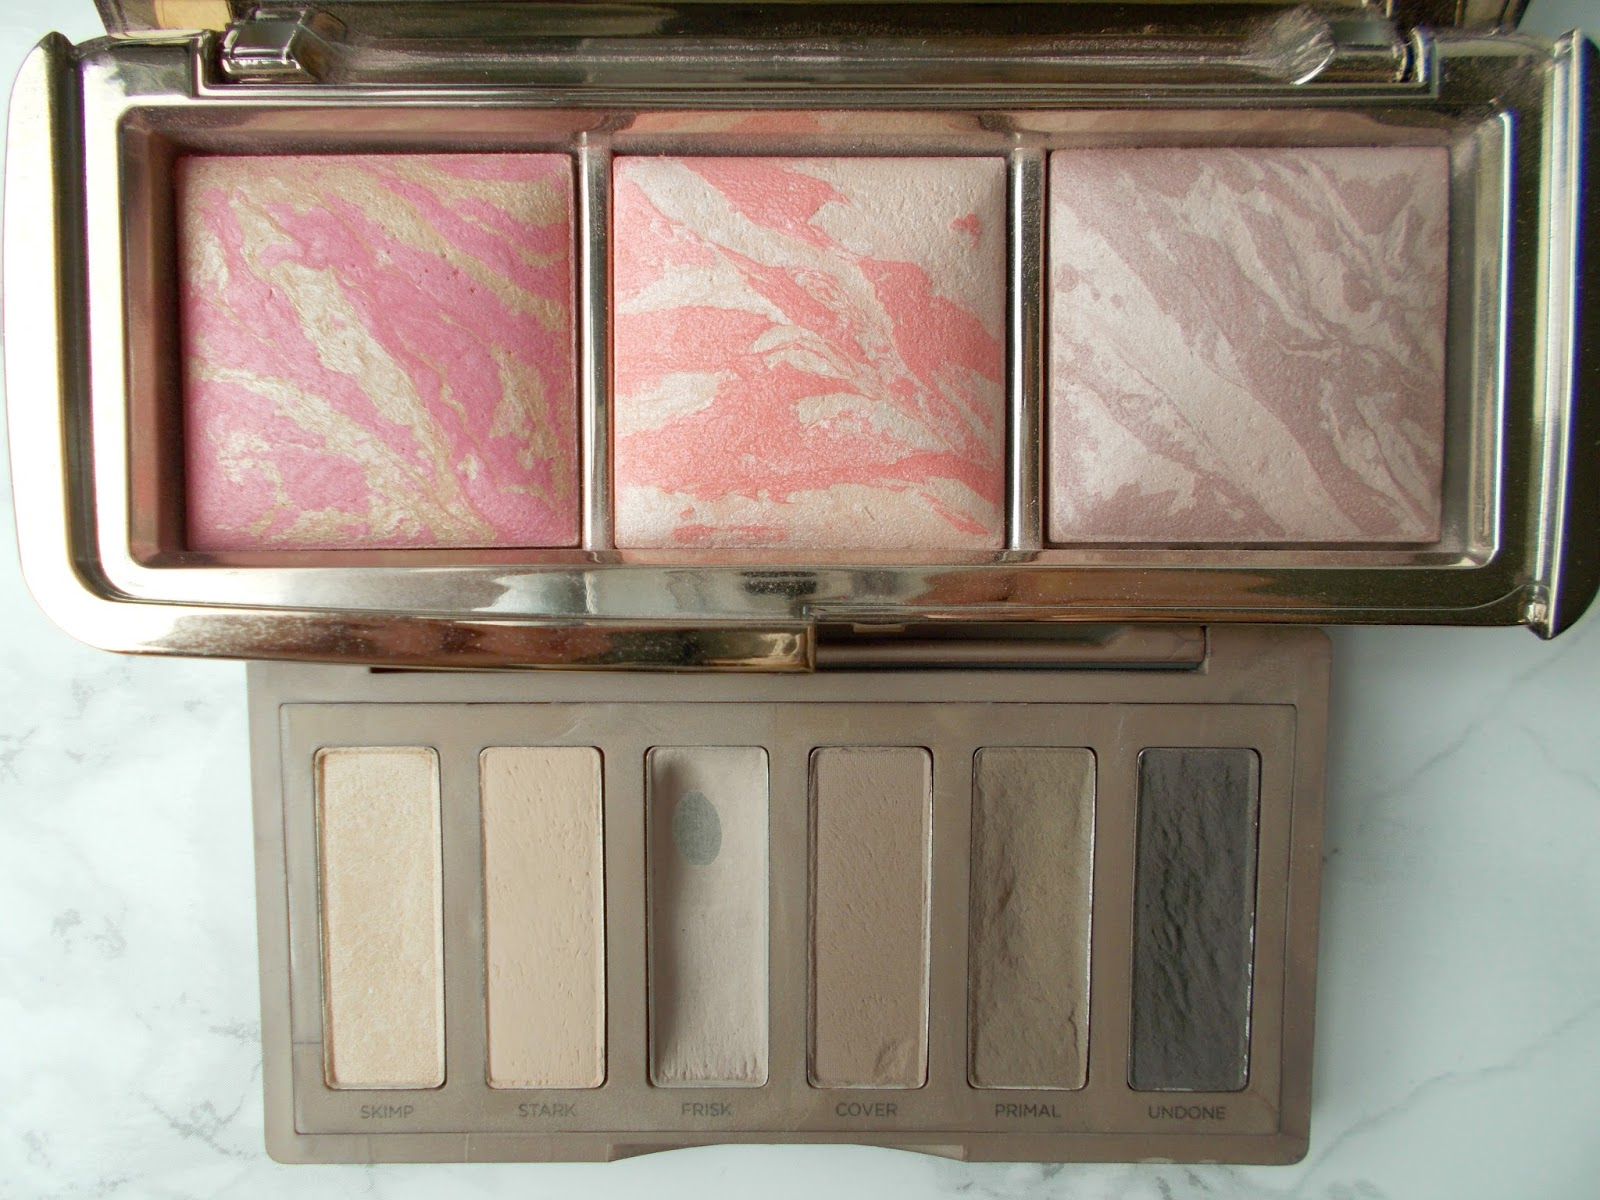 Hourglass ambient lighting blush palette urban decay naked basics 2